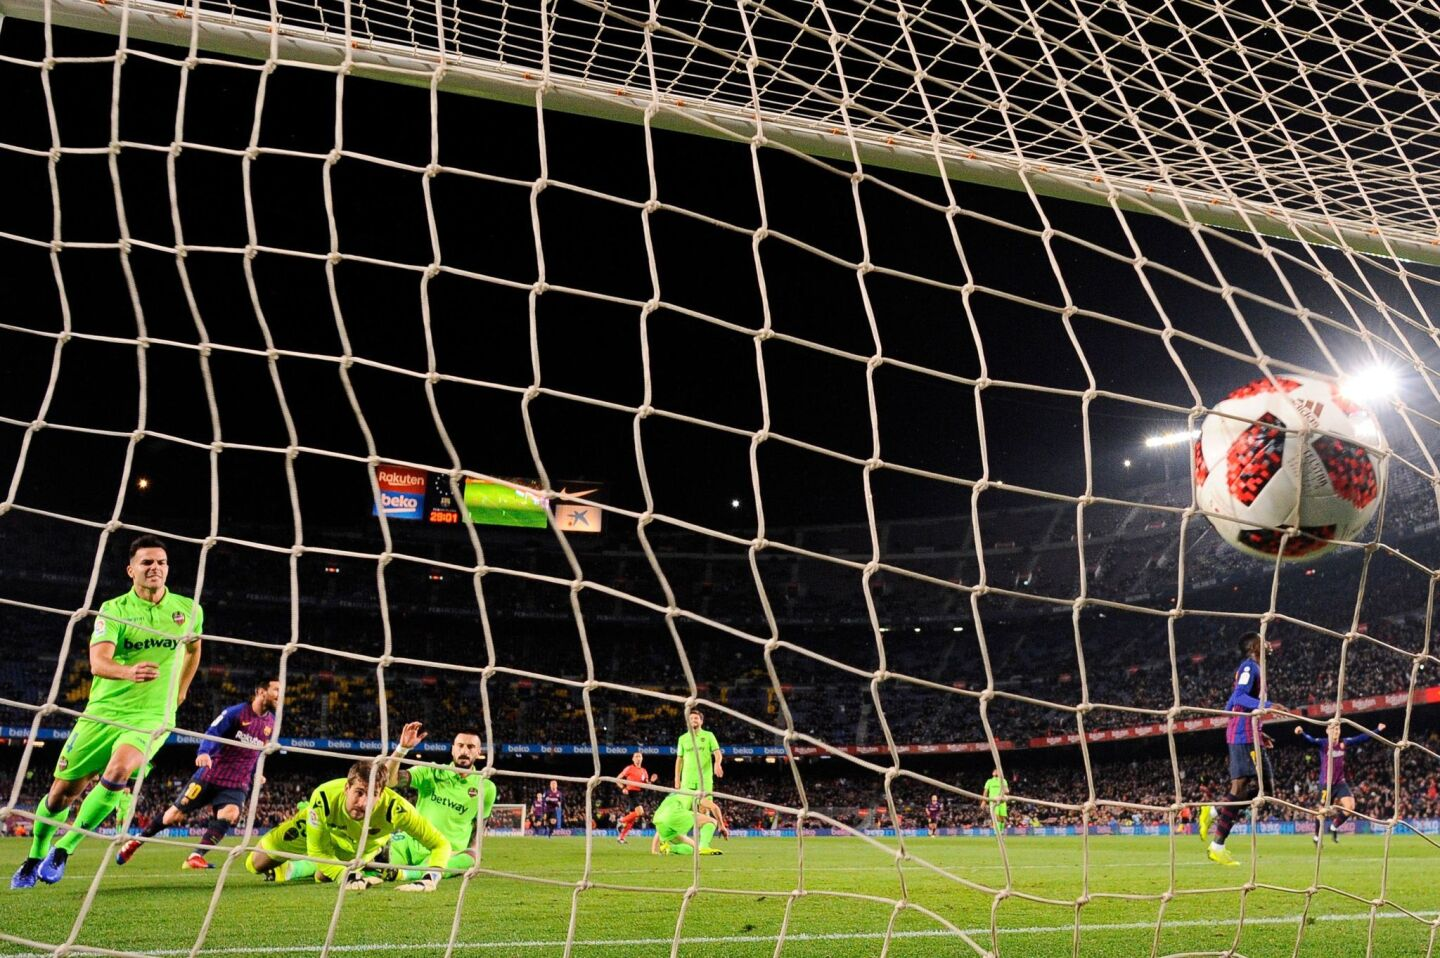 Barcelona's French forward Ousmane Dembele (R) scores a goal during the Spain's Copa del Rey (King's Cup) round of 16 second leg football match between FC Barcelona and Levante UD, at the Camp Nou stadium in Barcelona on January 17, 2019. (Photo by Josep LAGO / AFP)JOSEP LAGO/AFP/Getty Images ** OUTS - ELSENT, FPG, CM - OUTS * NM, PH, VA if sourced by CT, LA or MoD **